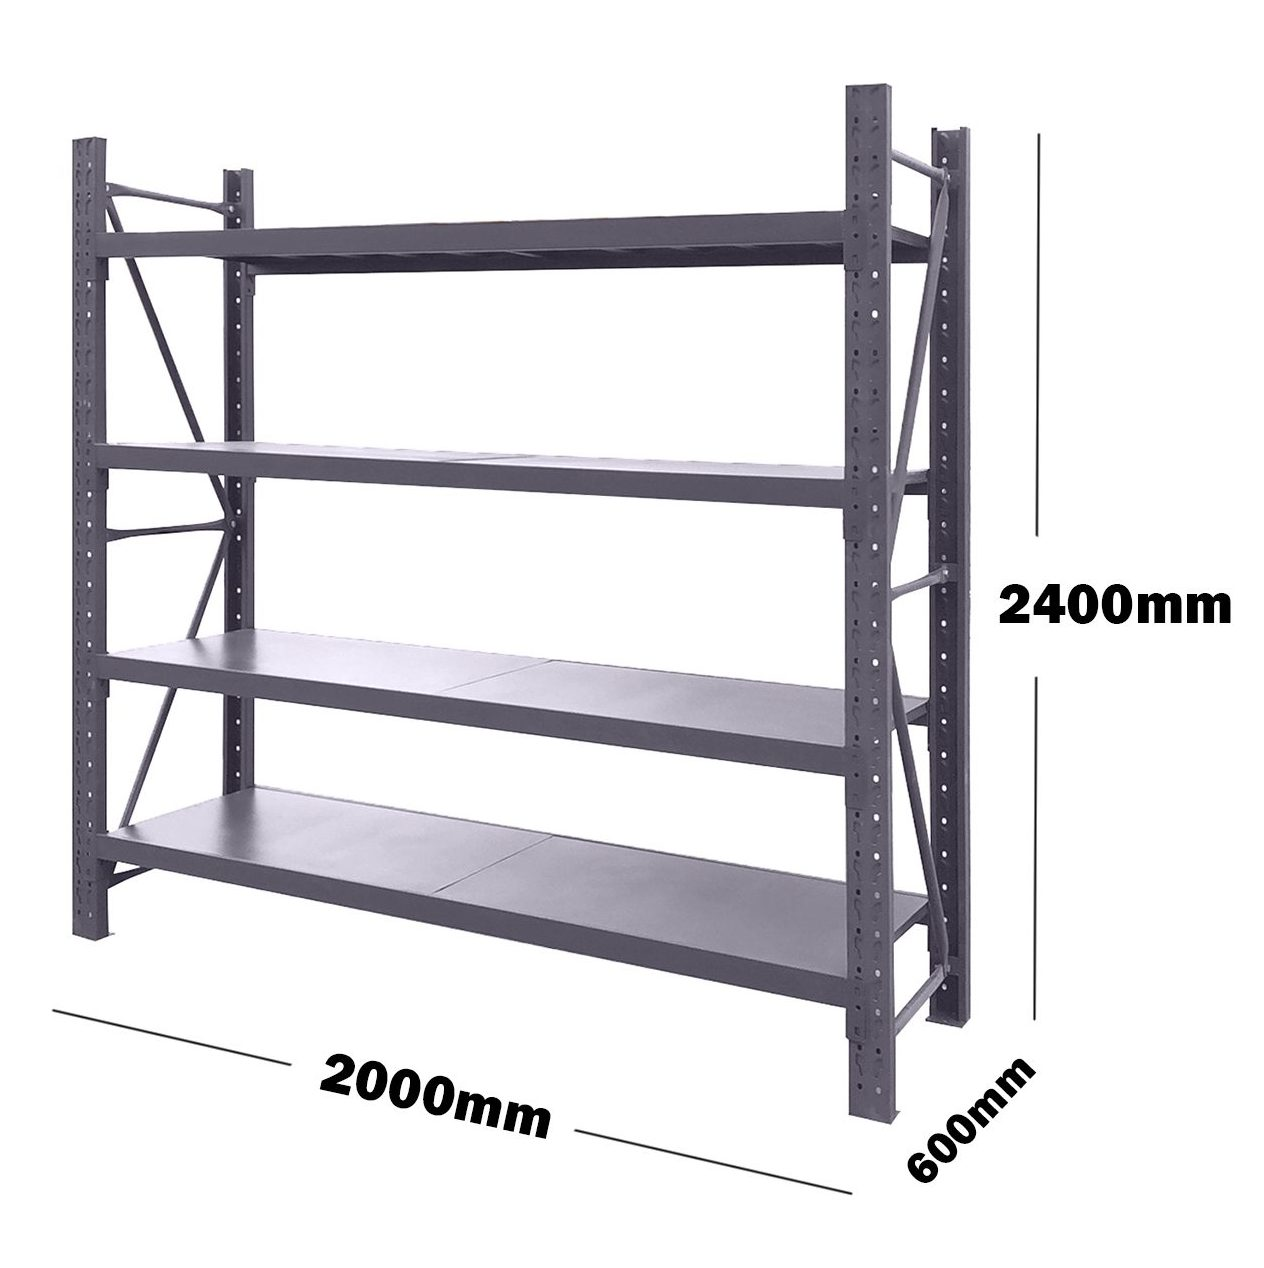 2M(L) x 2.4M(H) x 0.6M(D) Shelves Racking Metal Steel Charcoal 2024C